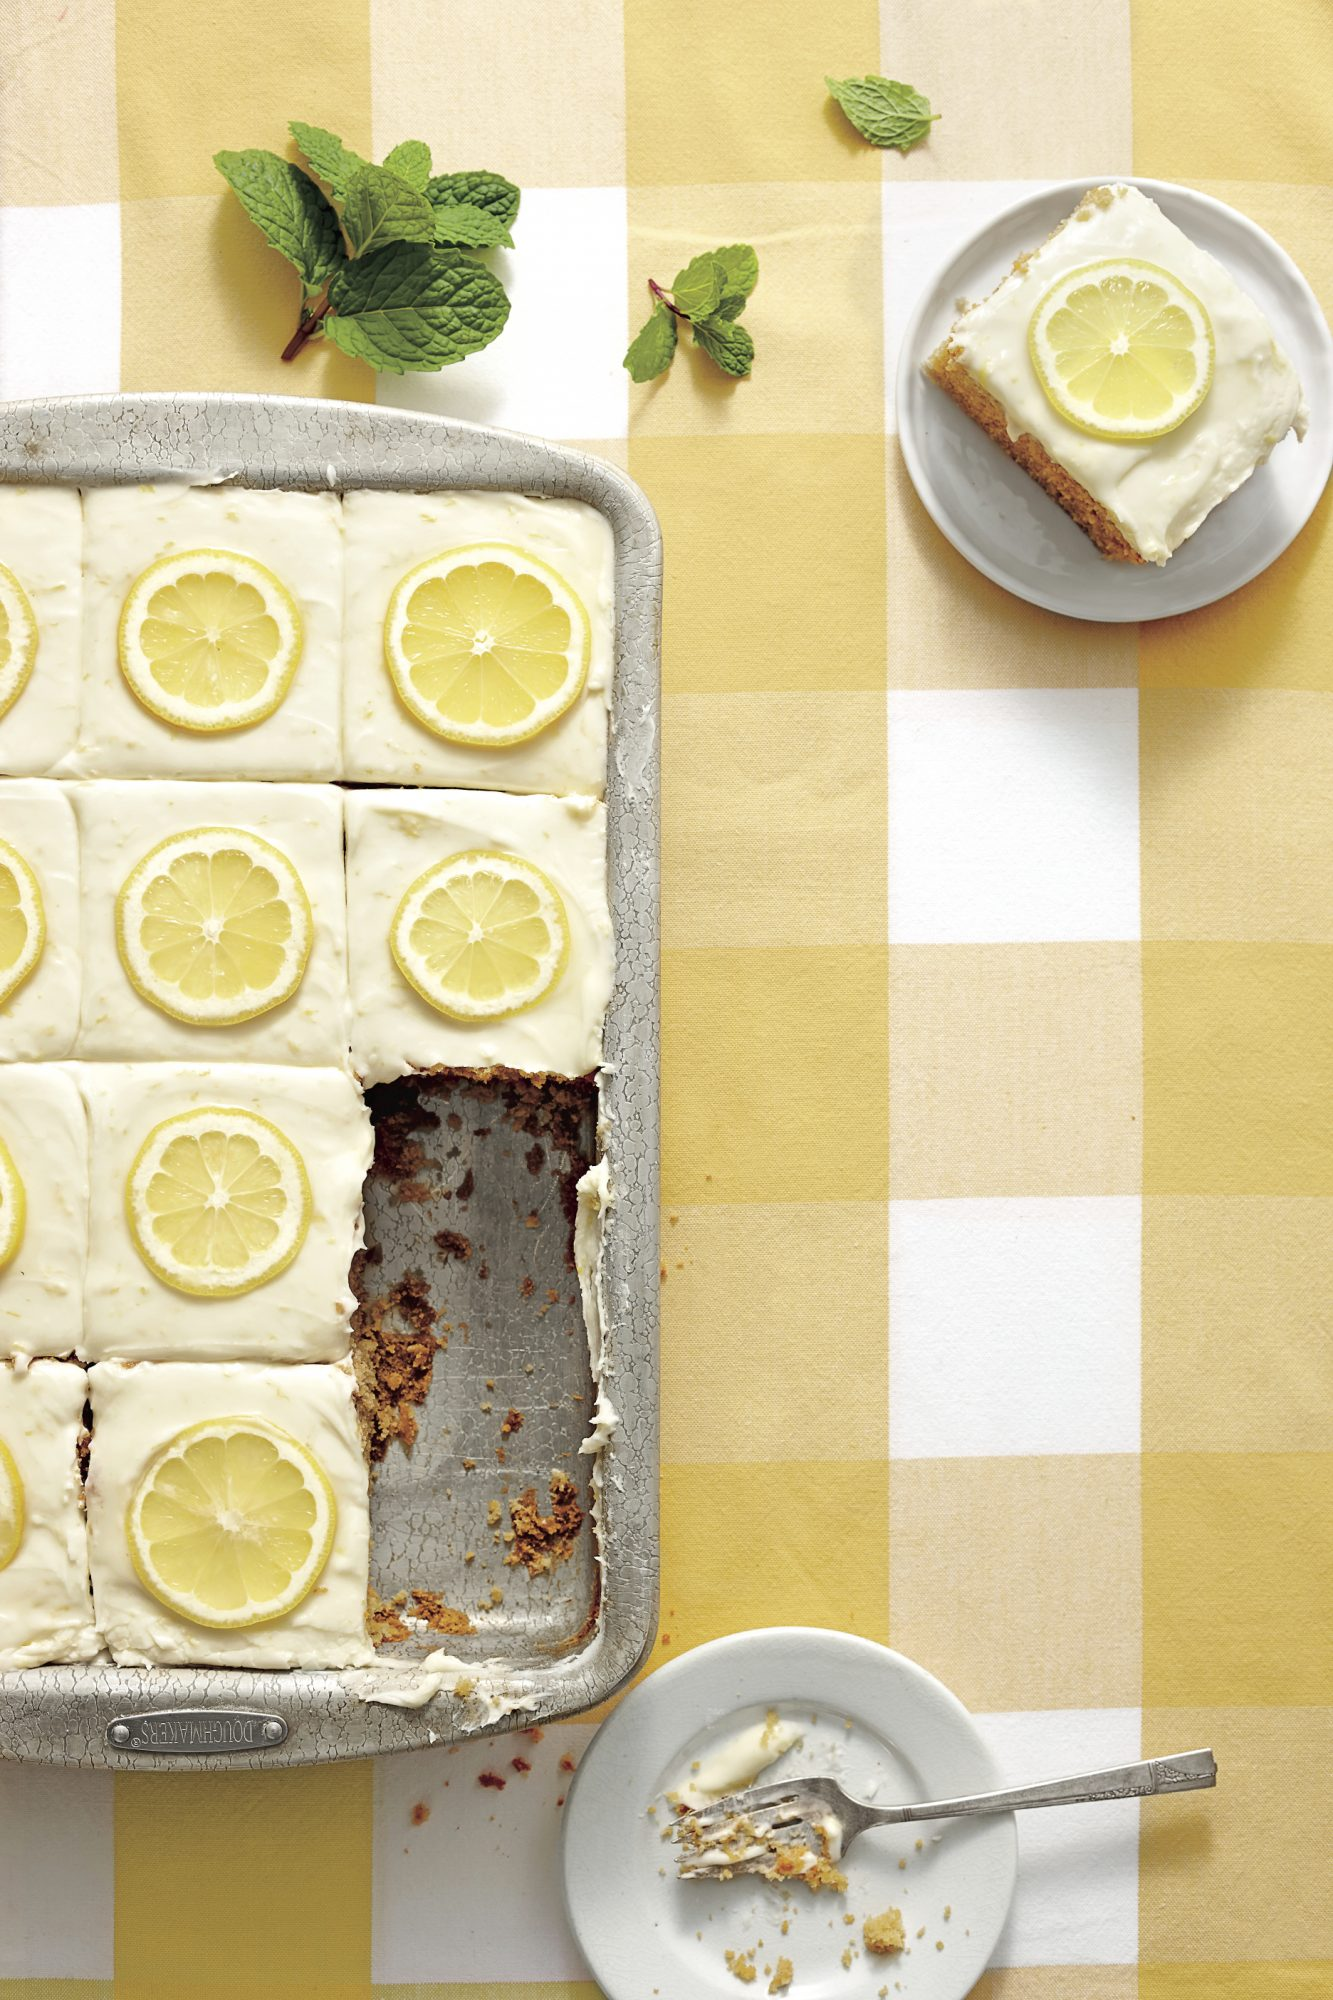 Best Lemon Recipes Sweet Tea and Lemonade Cake